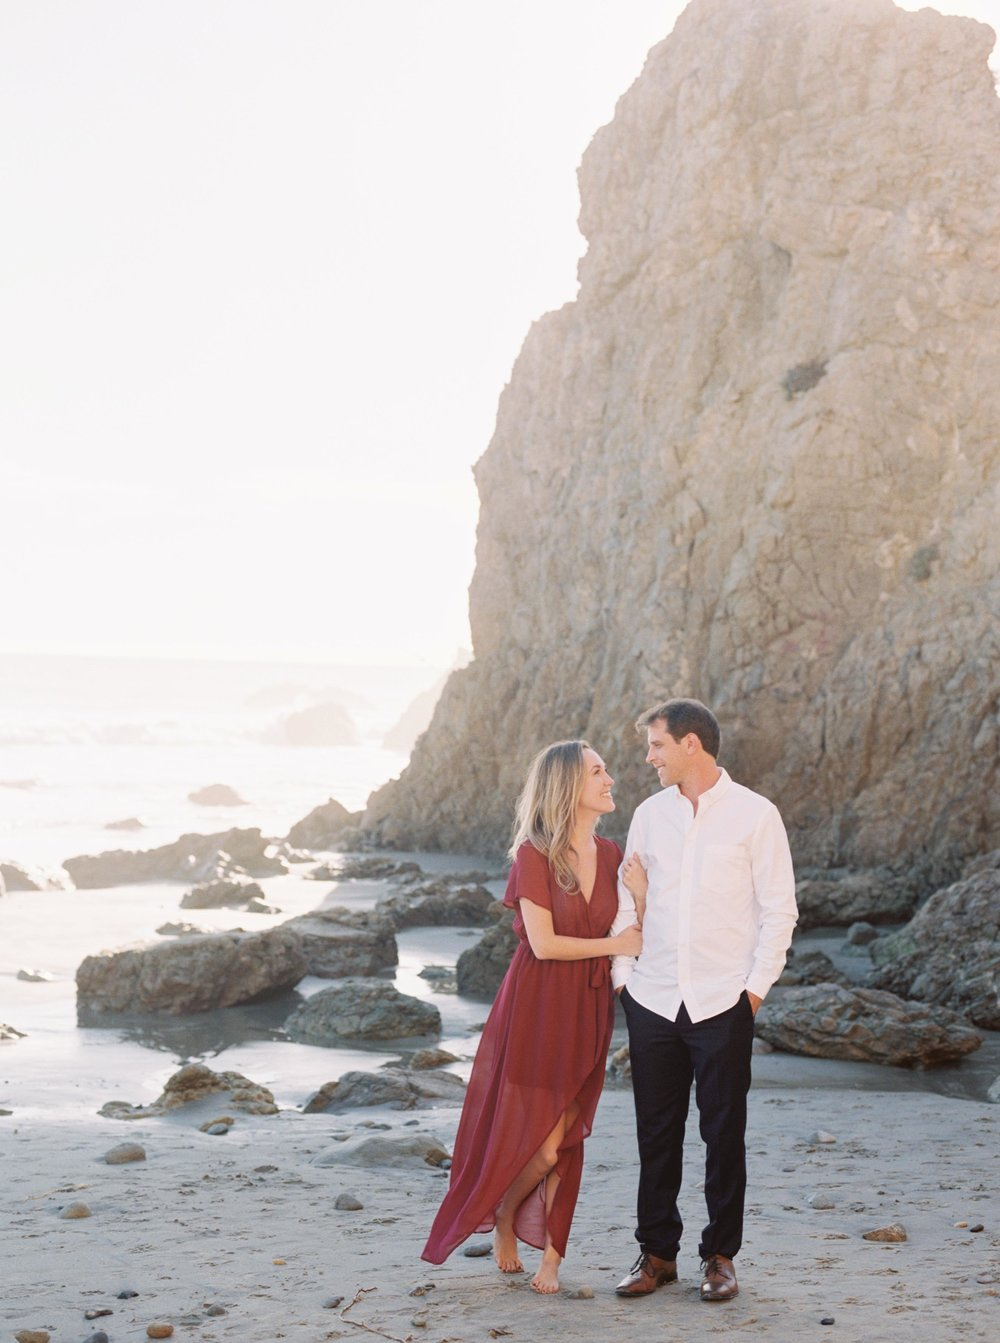 ELMATADOR_FUJI400H_MALIBU_LOSANGELES_PHOTOGRAPHER_WEDDING_ENGAGEMENT_STYLEMEPRETTY_FILM_BEACH_SOCAL_KATELROSEPHOTOGRAPHY_005.jpg